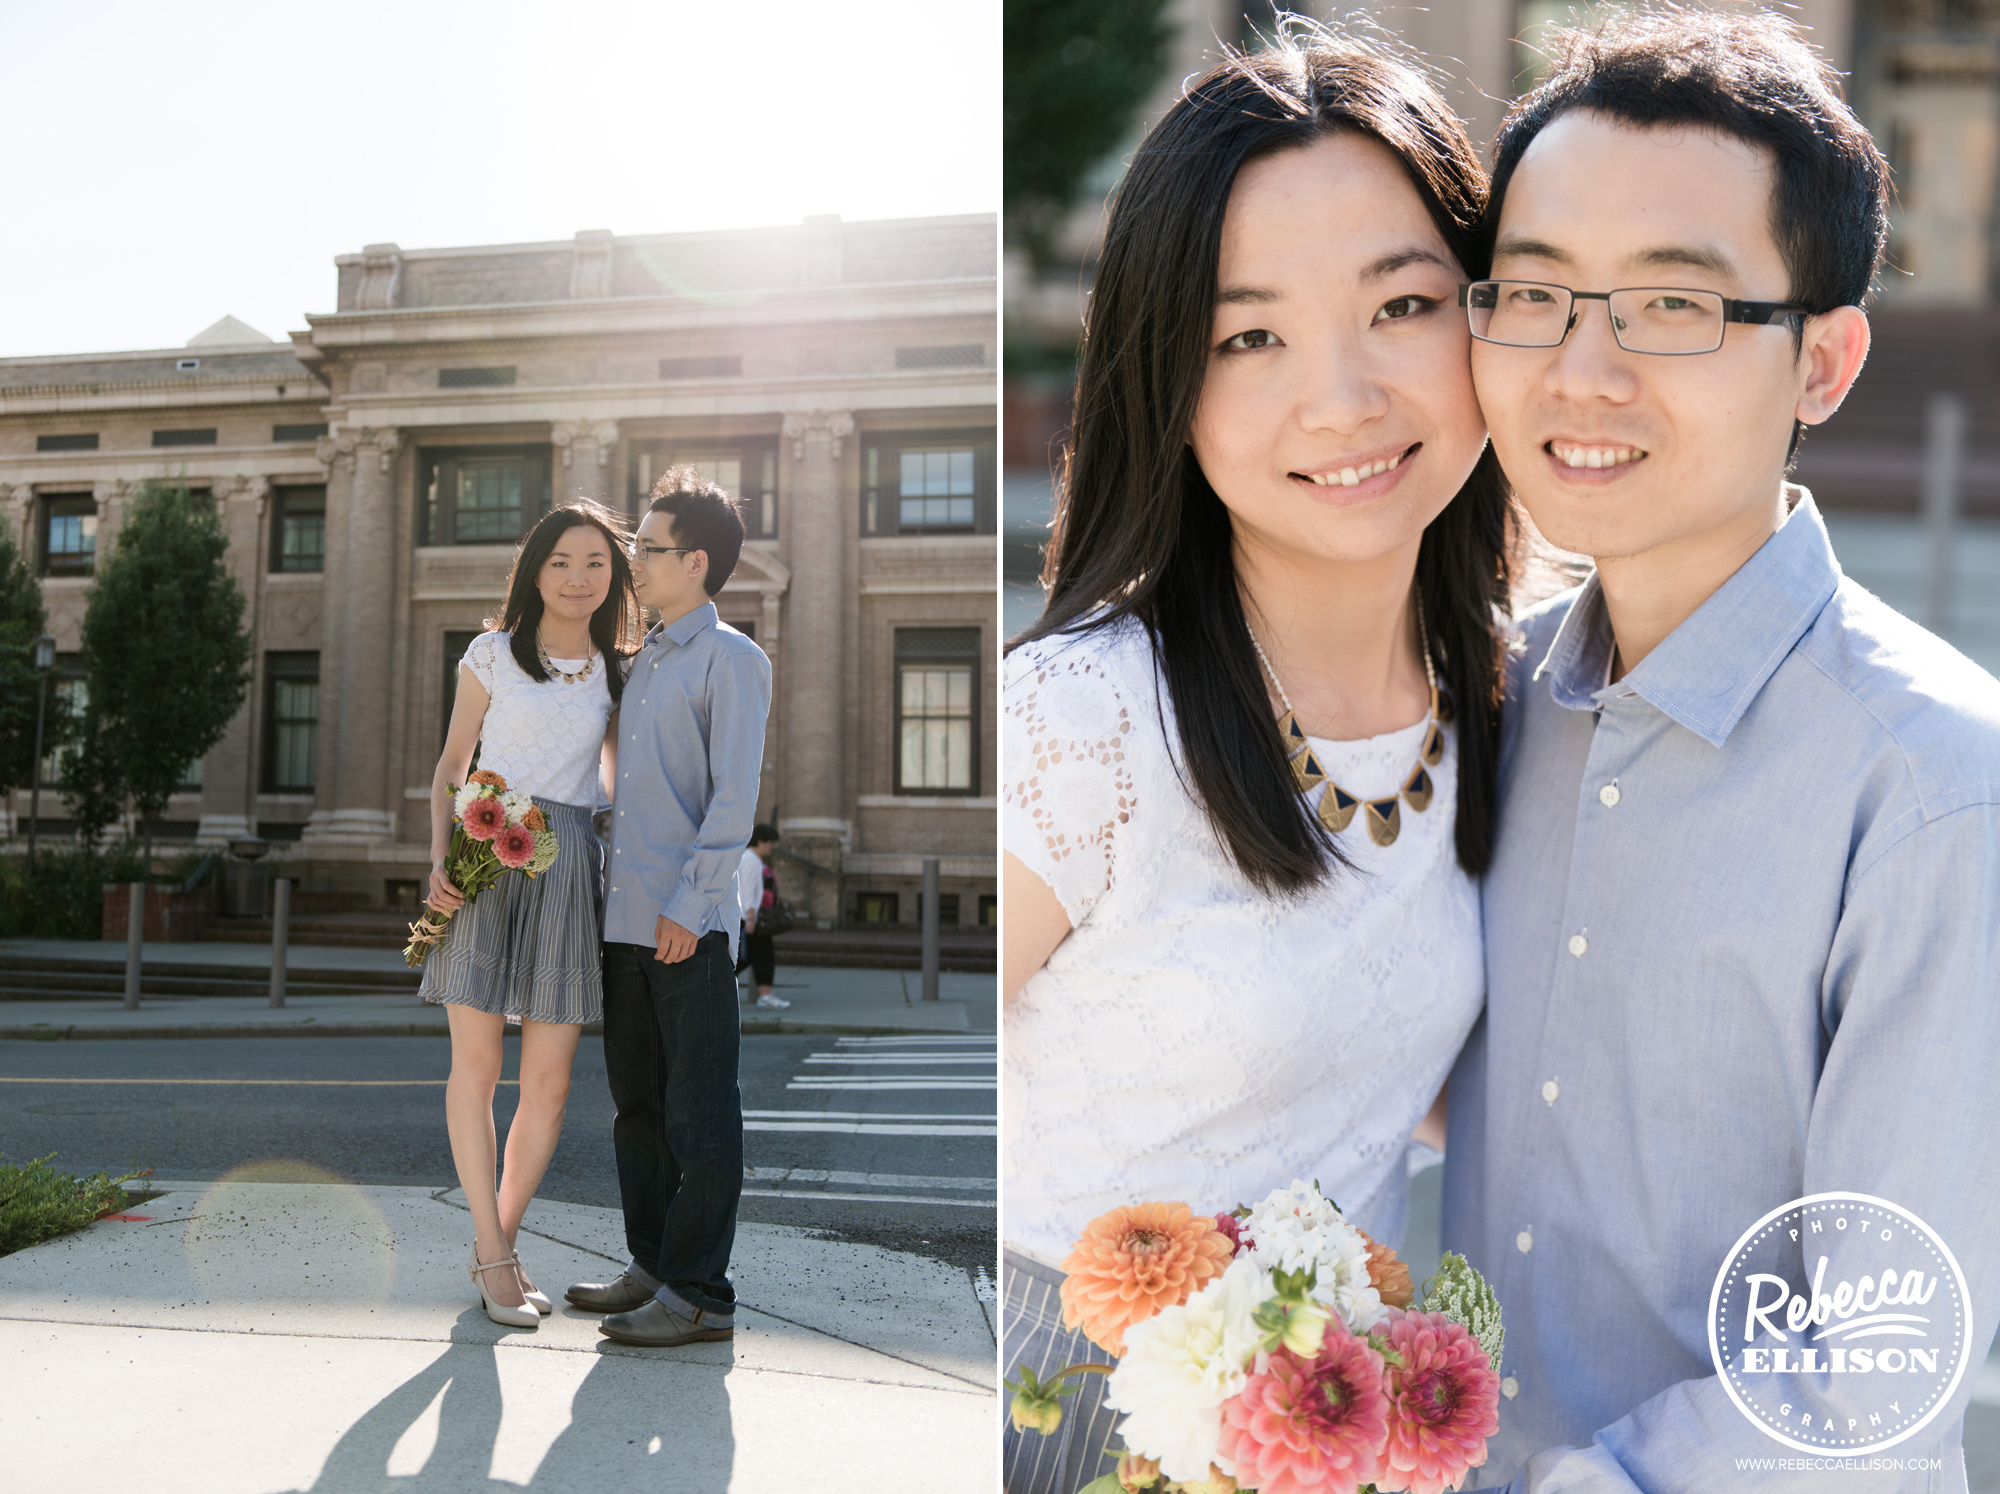 Engagement portraits in front of Suzallo Library photographed by University of Washington Engagement Photographer Rebecca Ellison